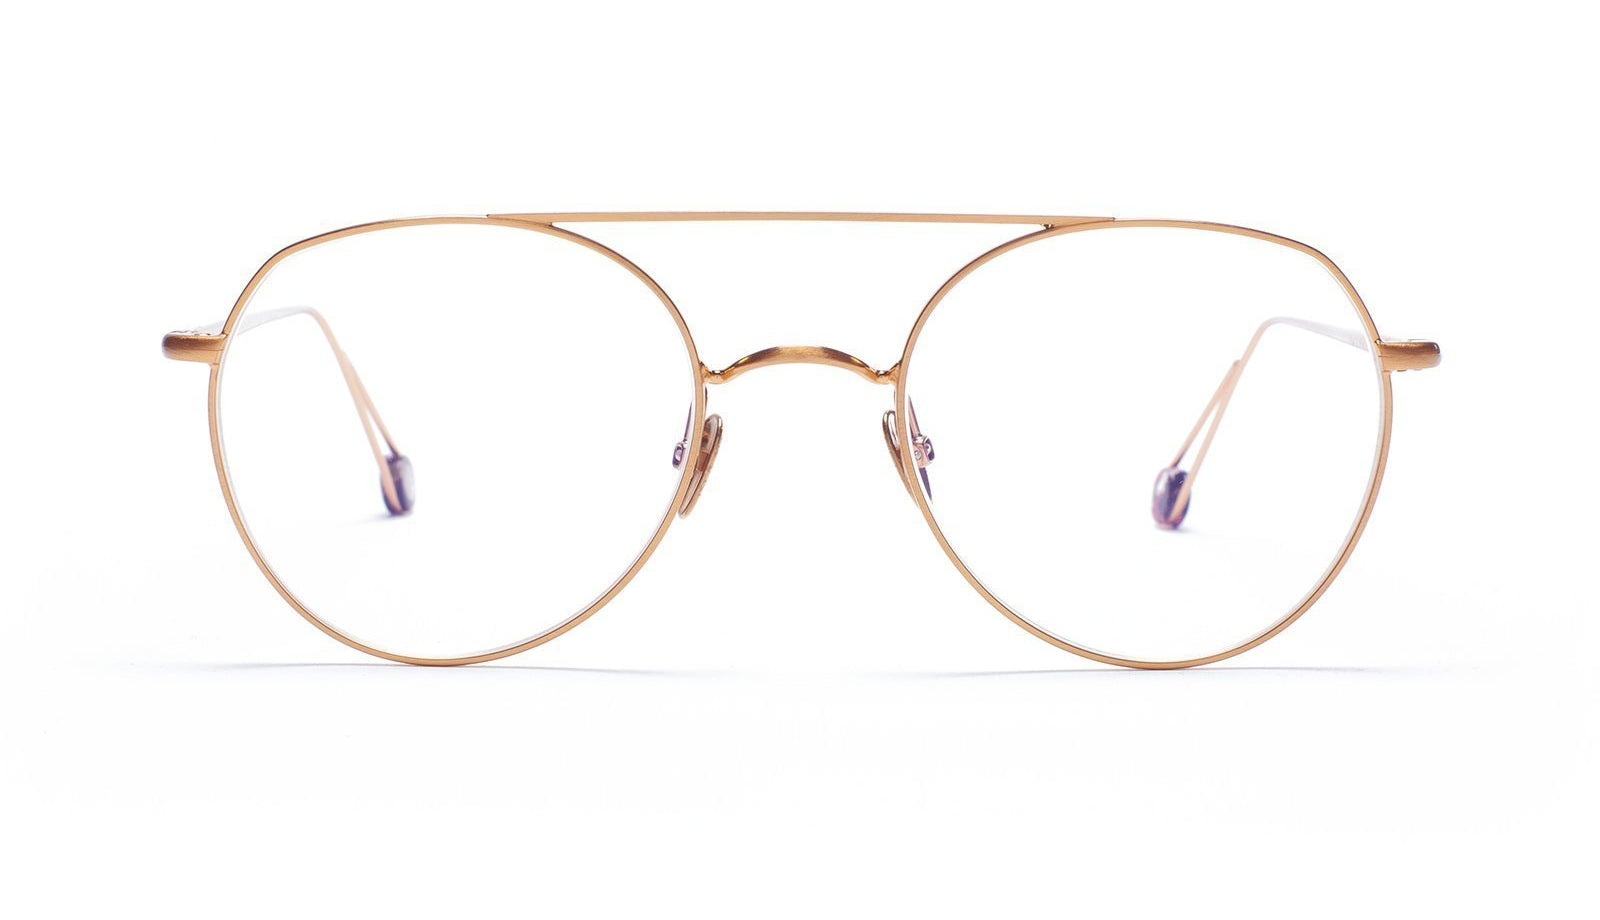 Ahlem- Place Du Brésil Sunglasses Rose Gold